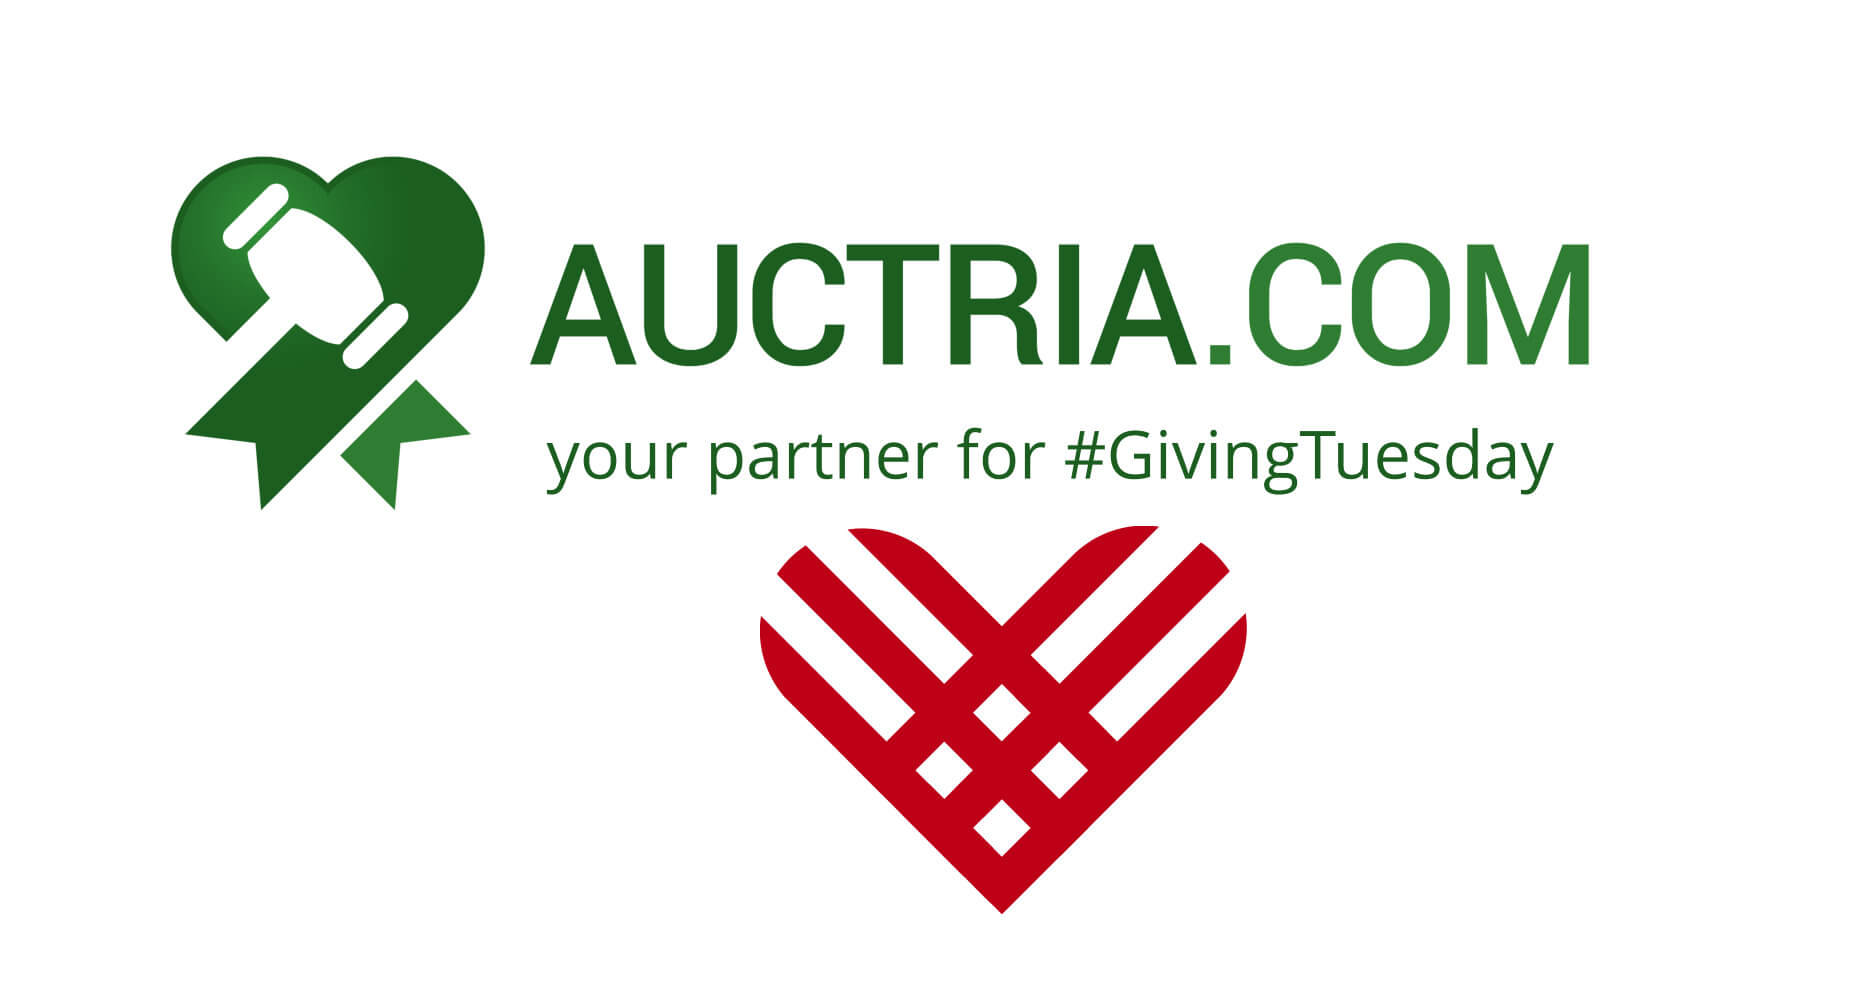 #GivingTuesday & Auctria, a perfect match